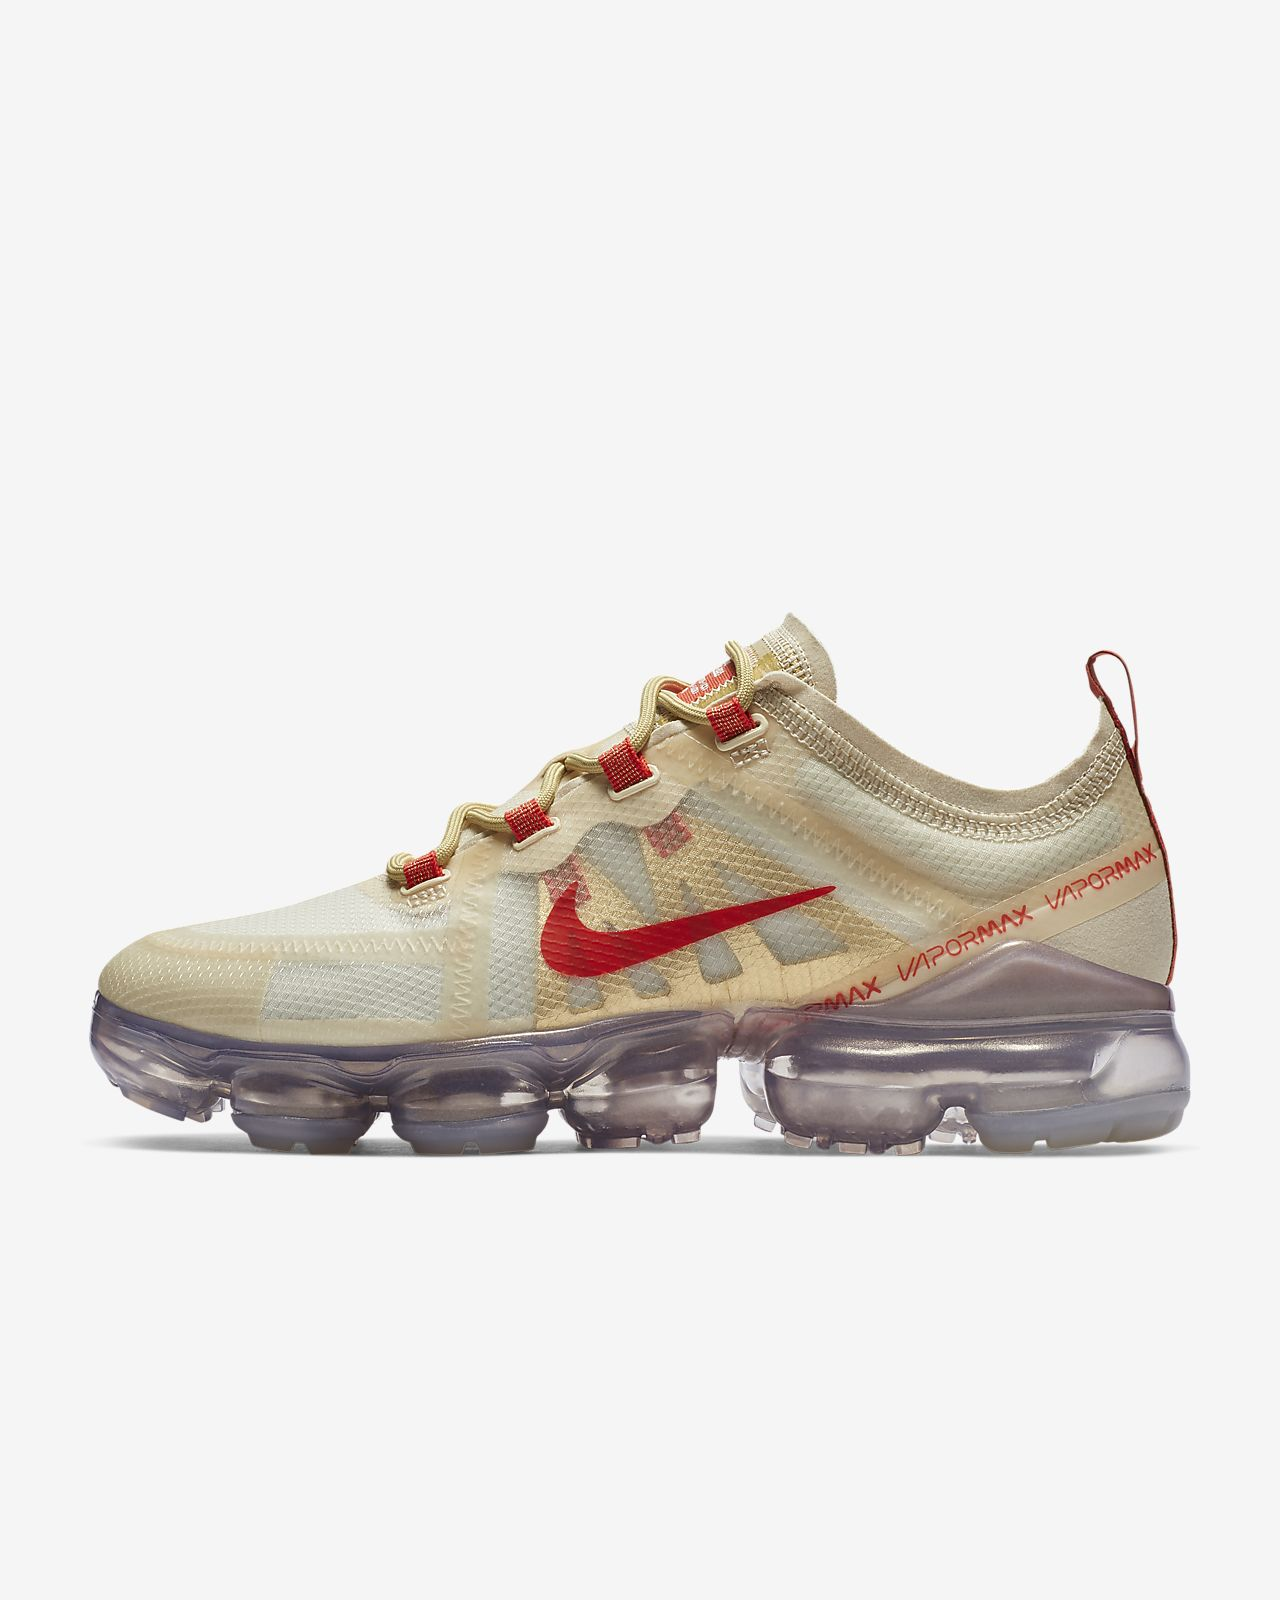 Chaussure Nike Air VaporMax 2019 CNY pour Femme